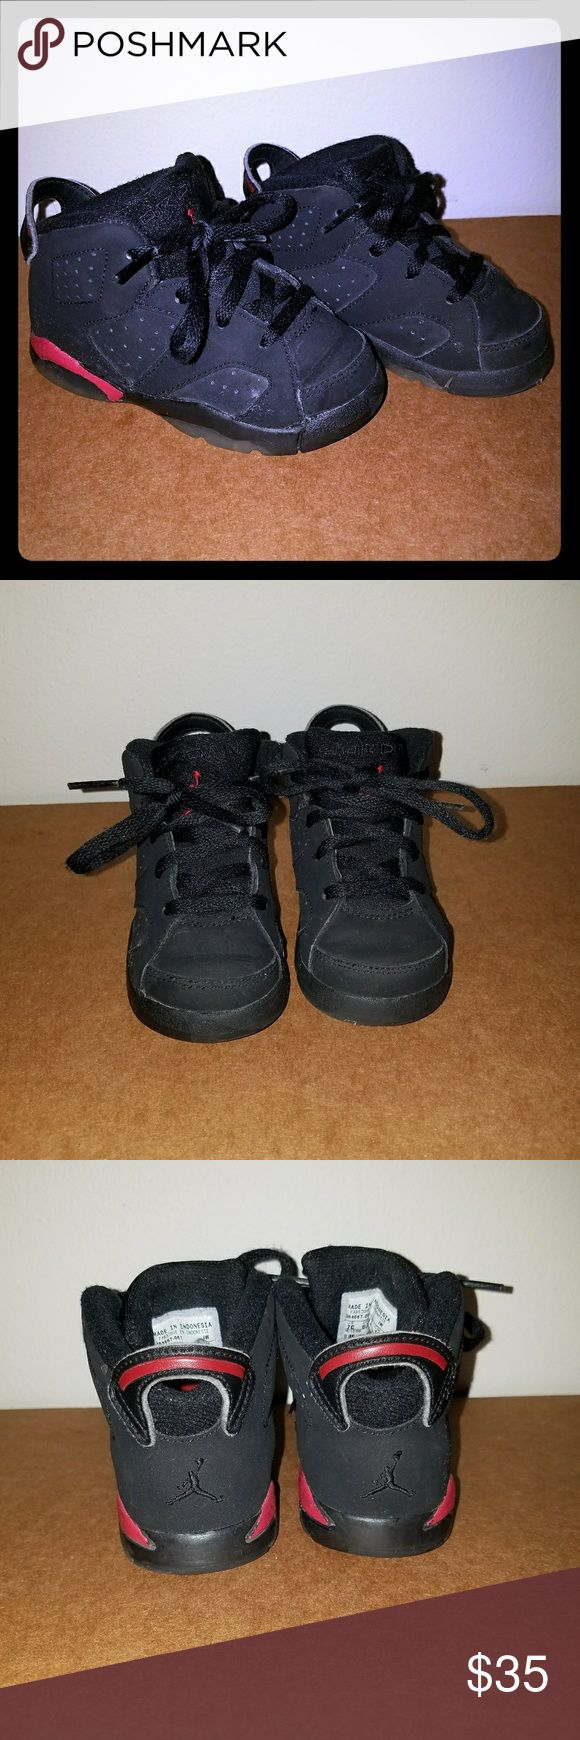 Authentic Retro Jordan VI/6 - Black Size 7c I am selling an authentic pair of Jordan Retro VI. They are in great condition. Size 7c. Please let me know if you have any questions. Jordan Shoes Sneakers